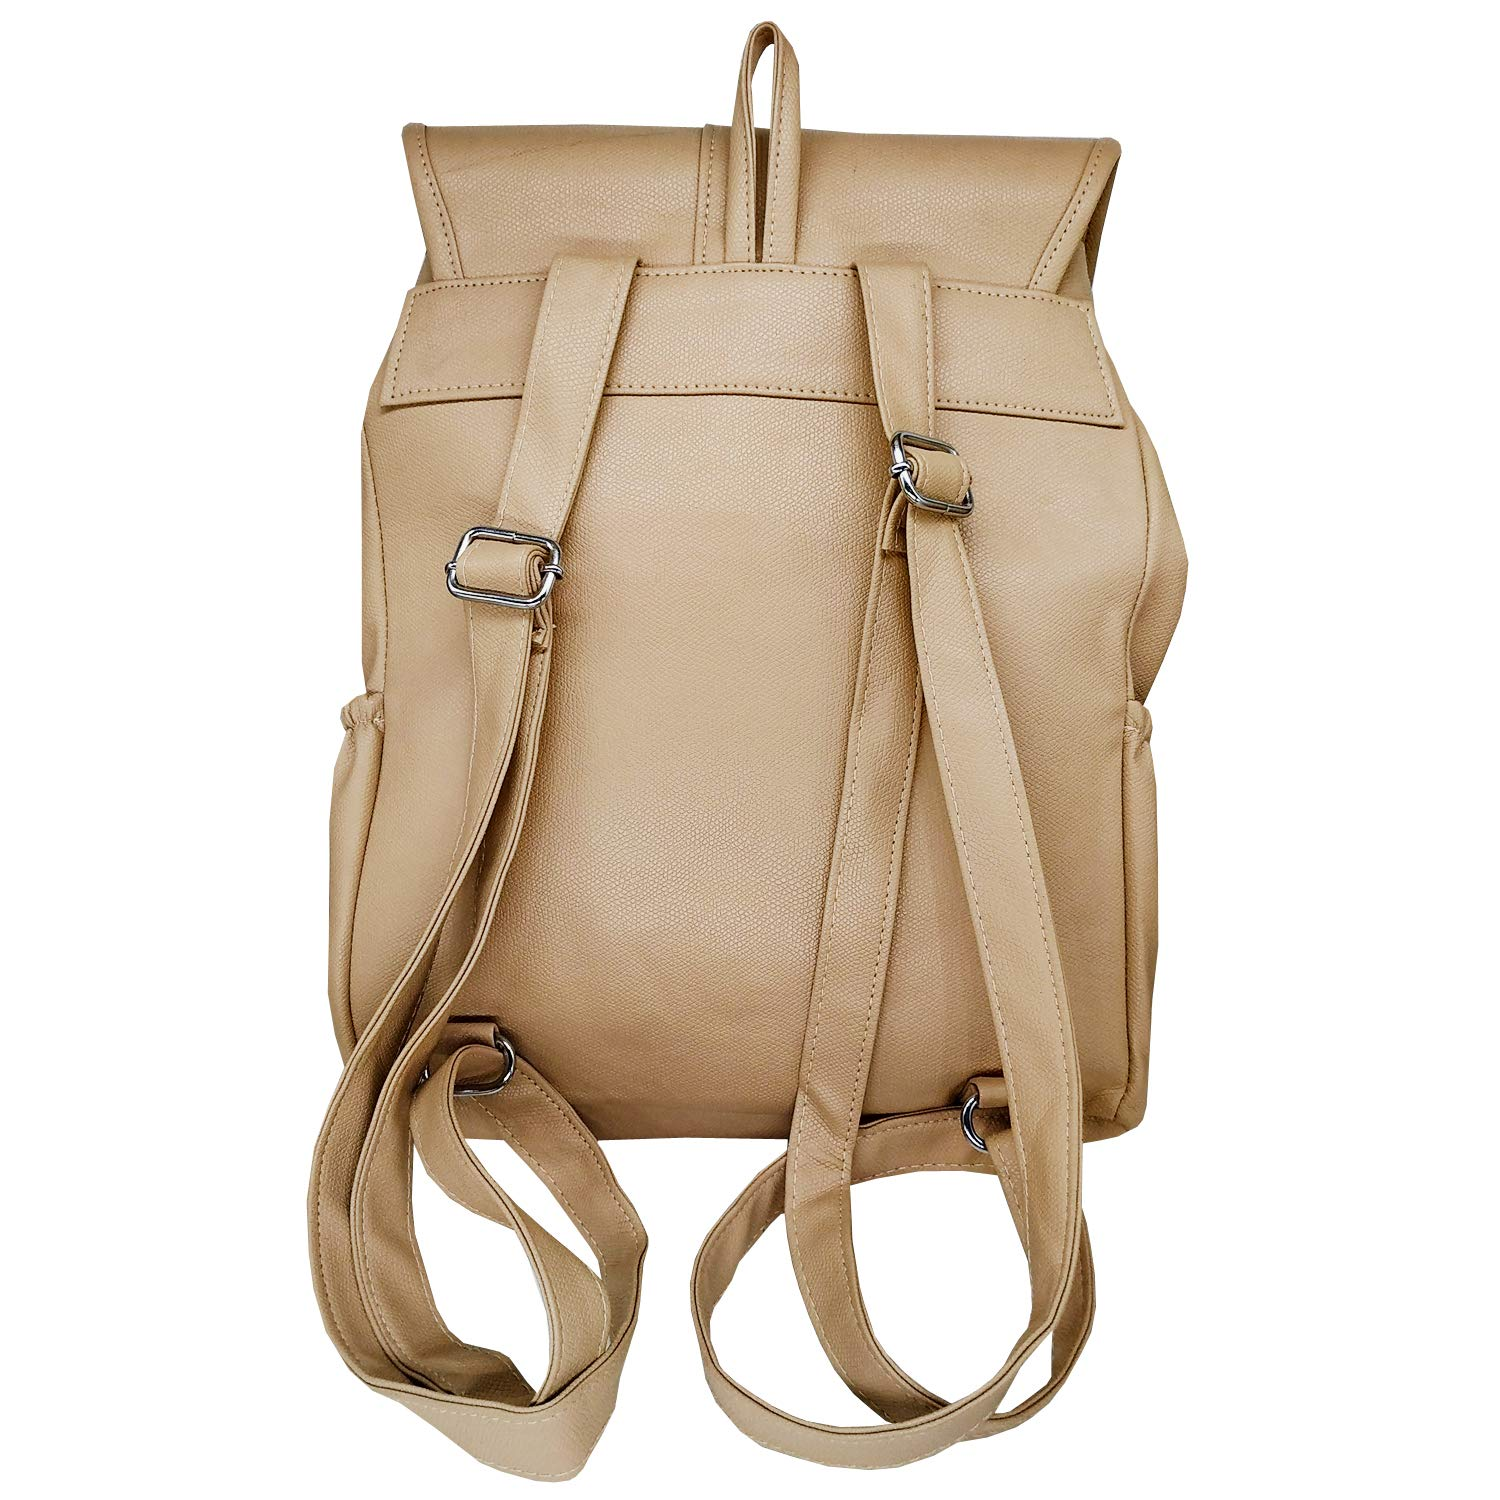 Artificial Leather Student Backpack For Girls (Off-White) - Bagaholics Gift